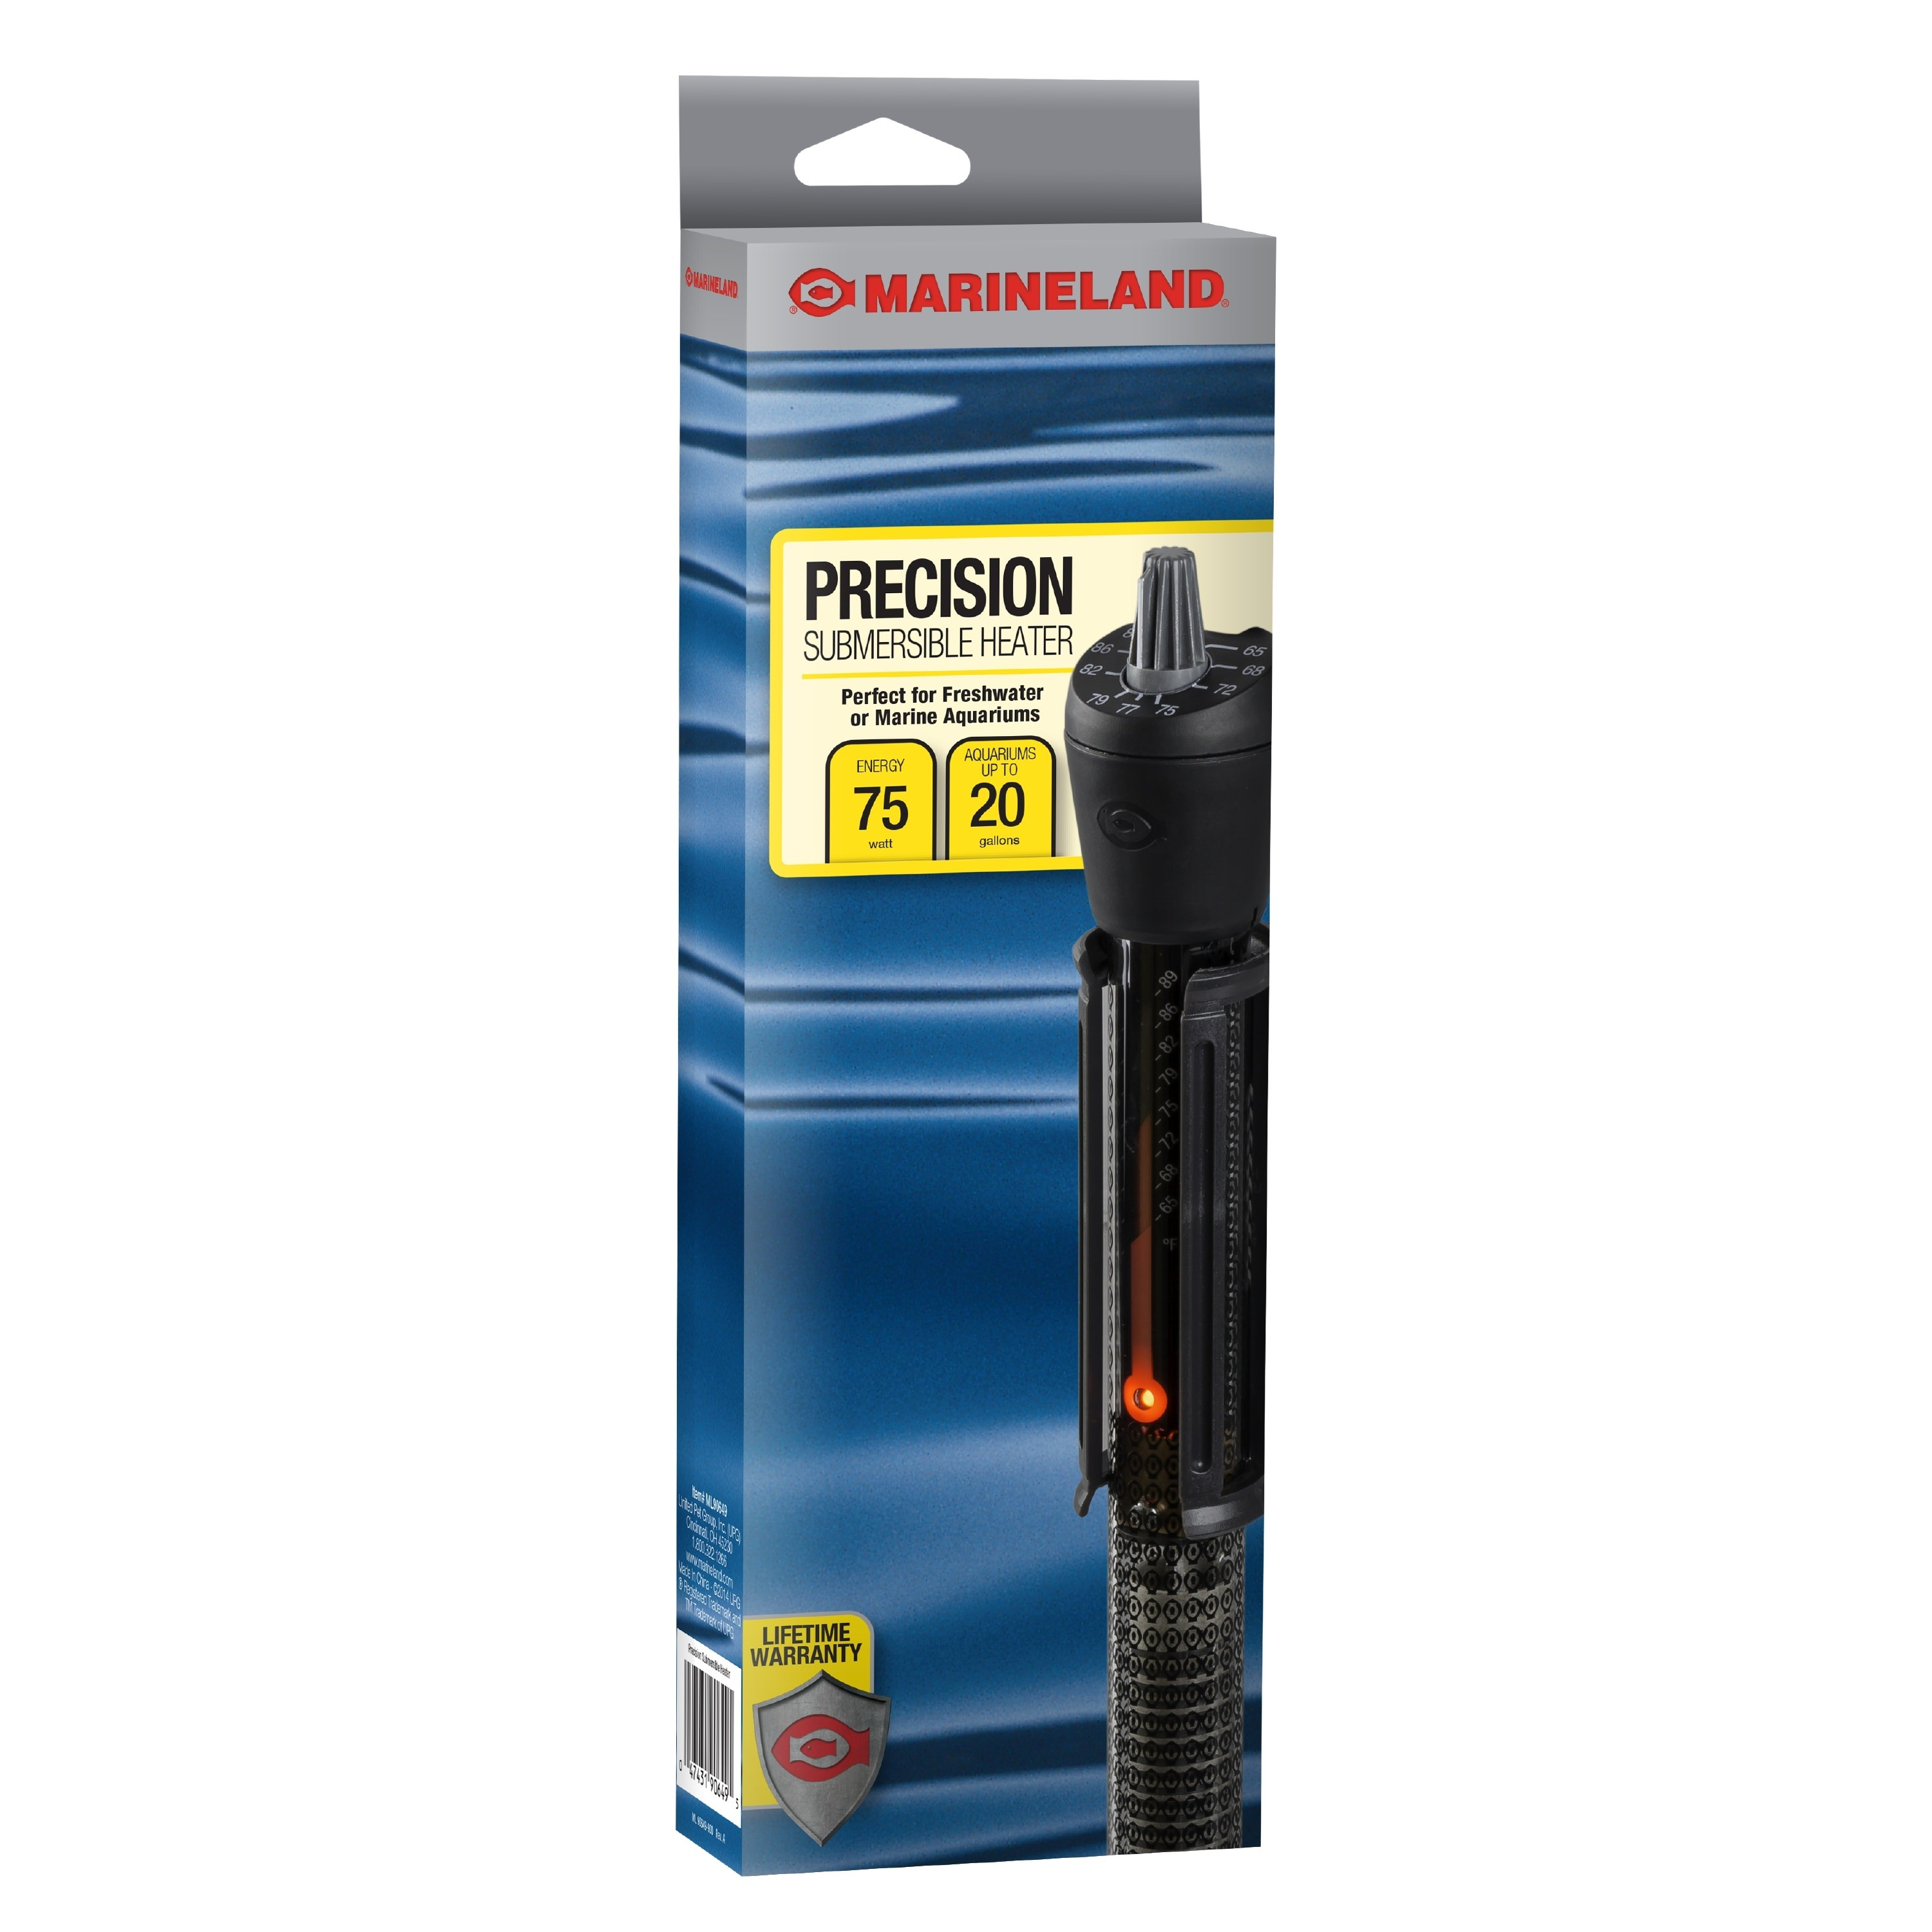 Marineland Precision Aquarium Heater, Up to 20 Gallons, 75-Watt